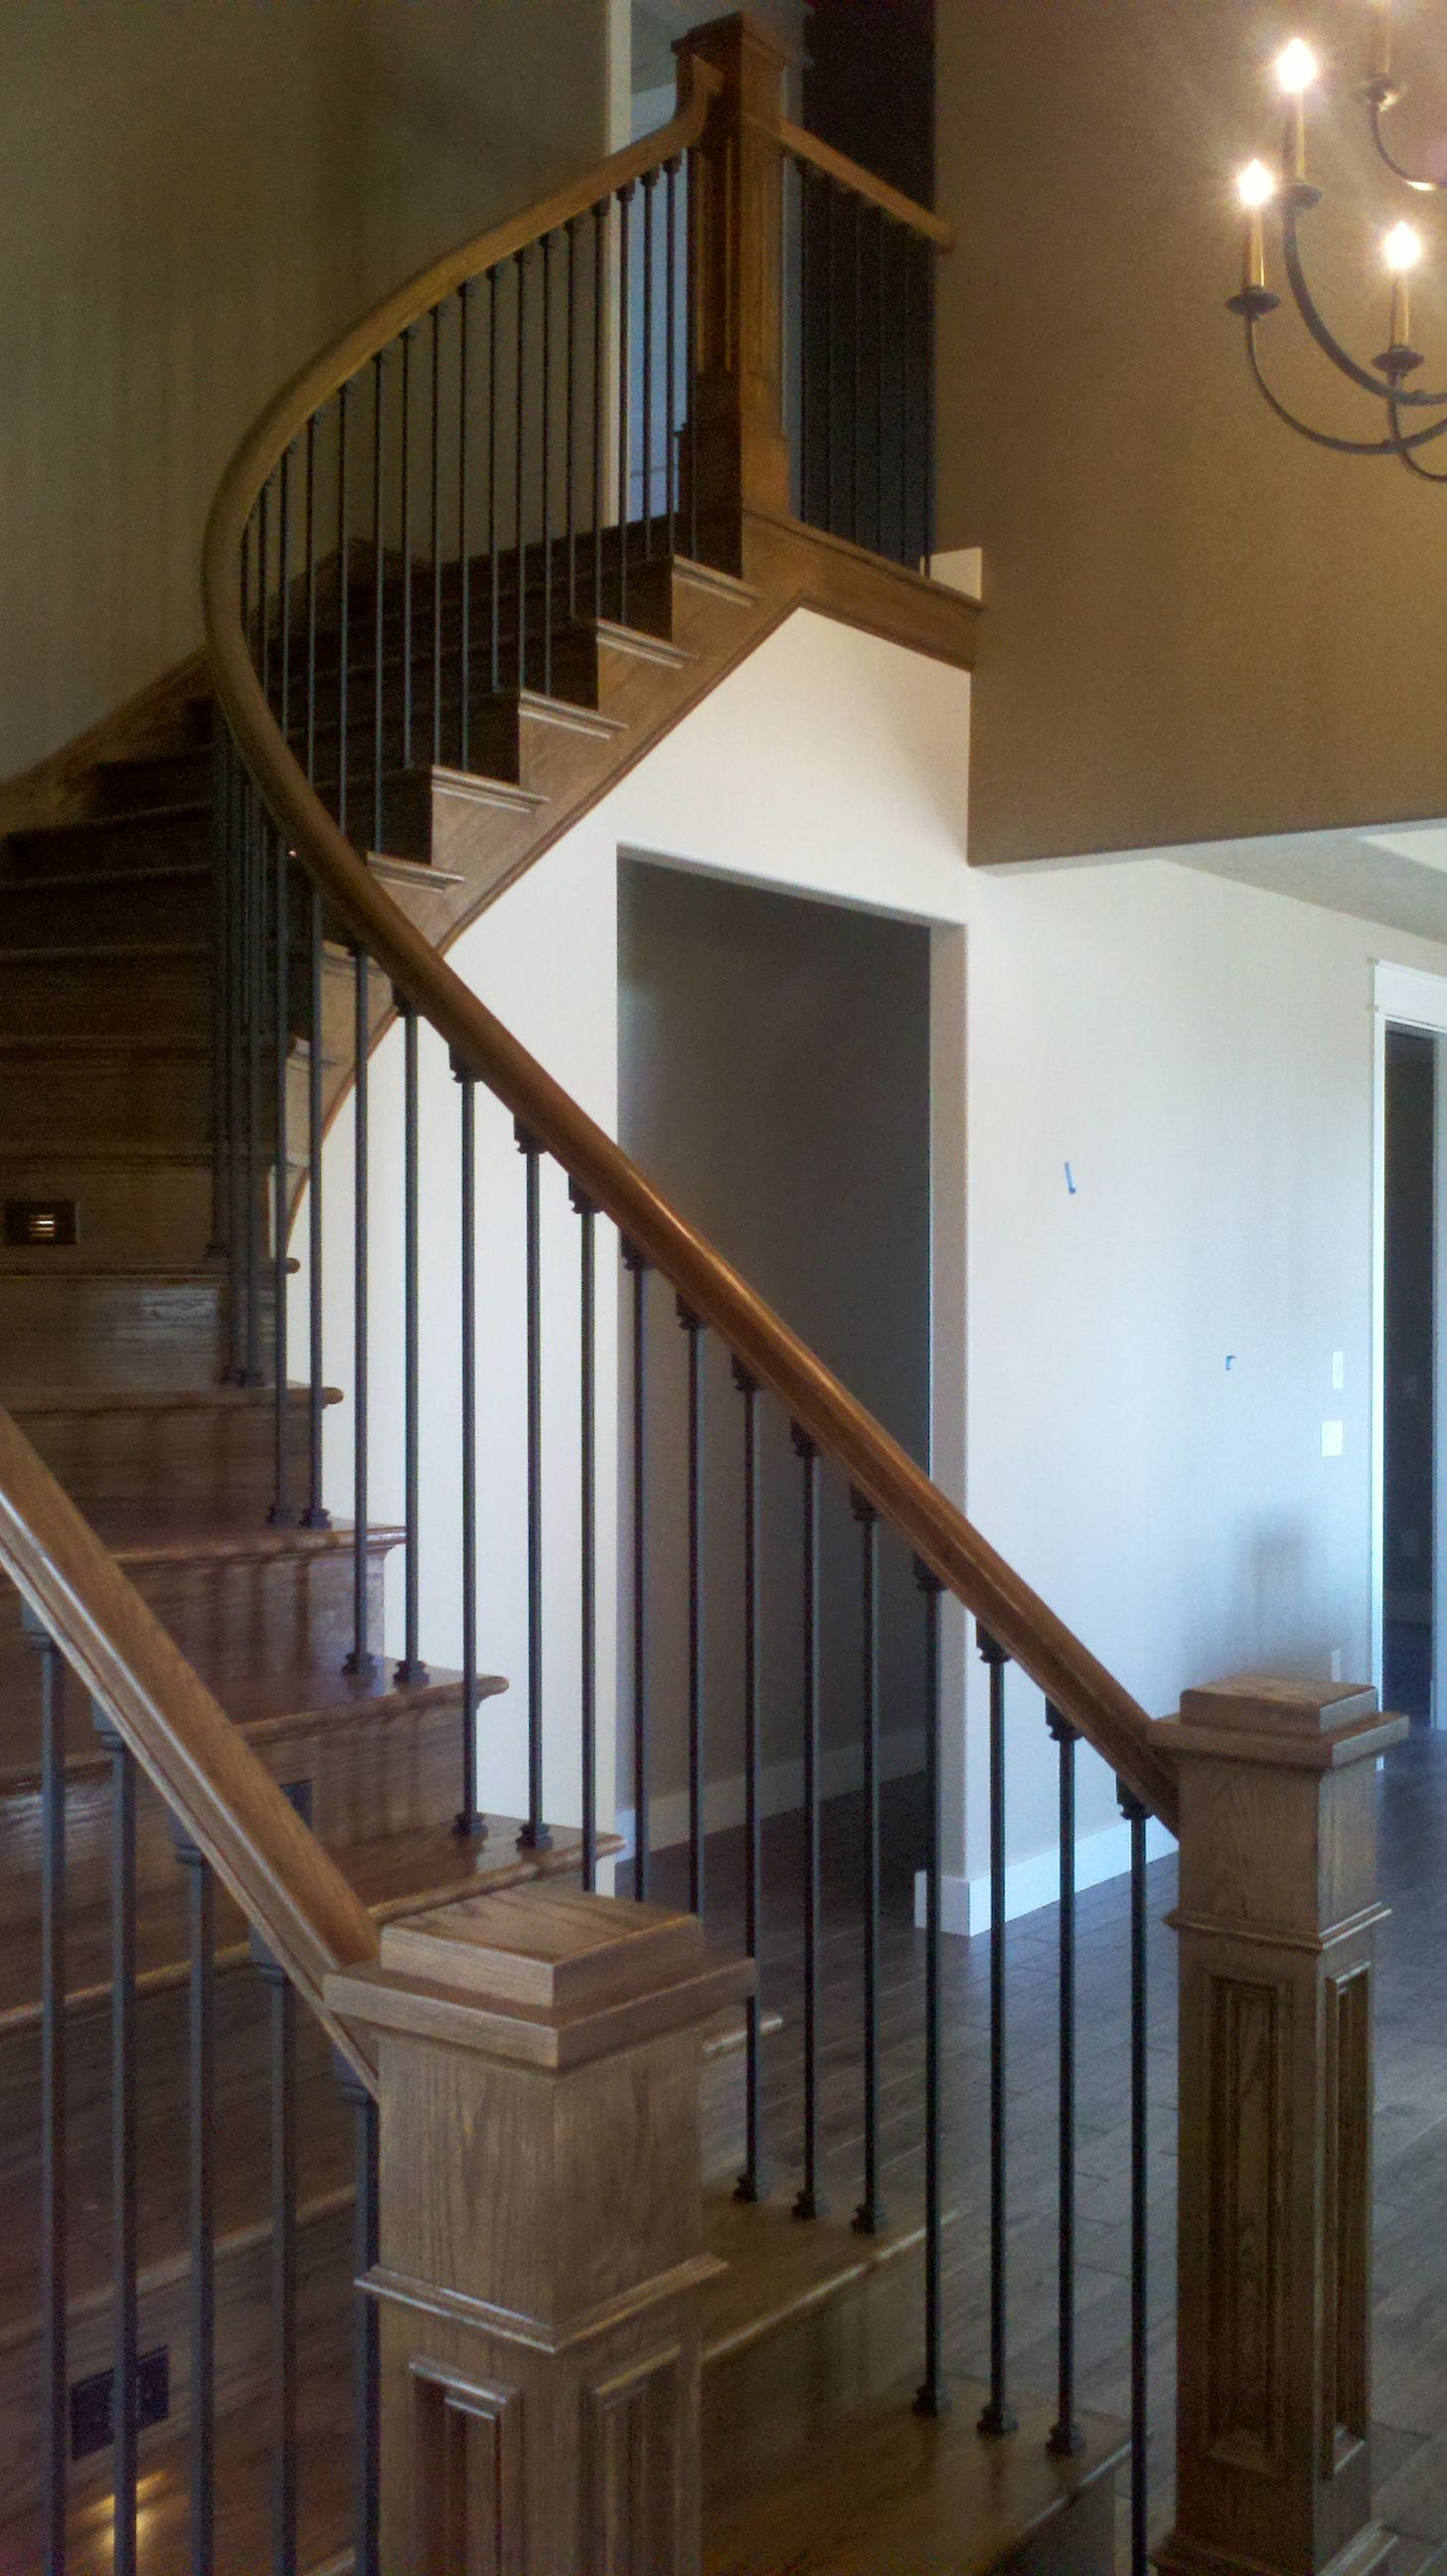 Best A Very Nice Curved Rail With Wood Floor Stairs Lights In 640 x 480